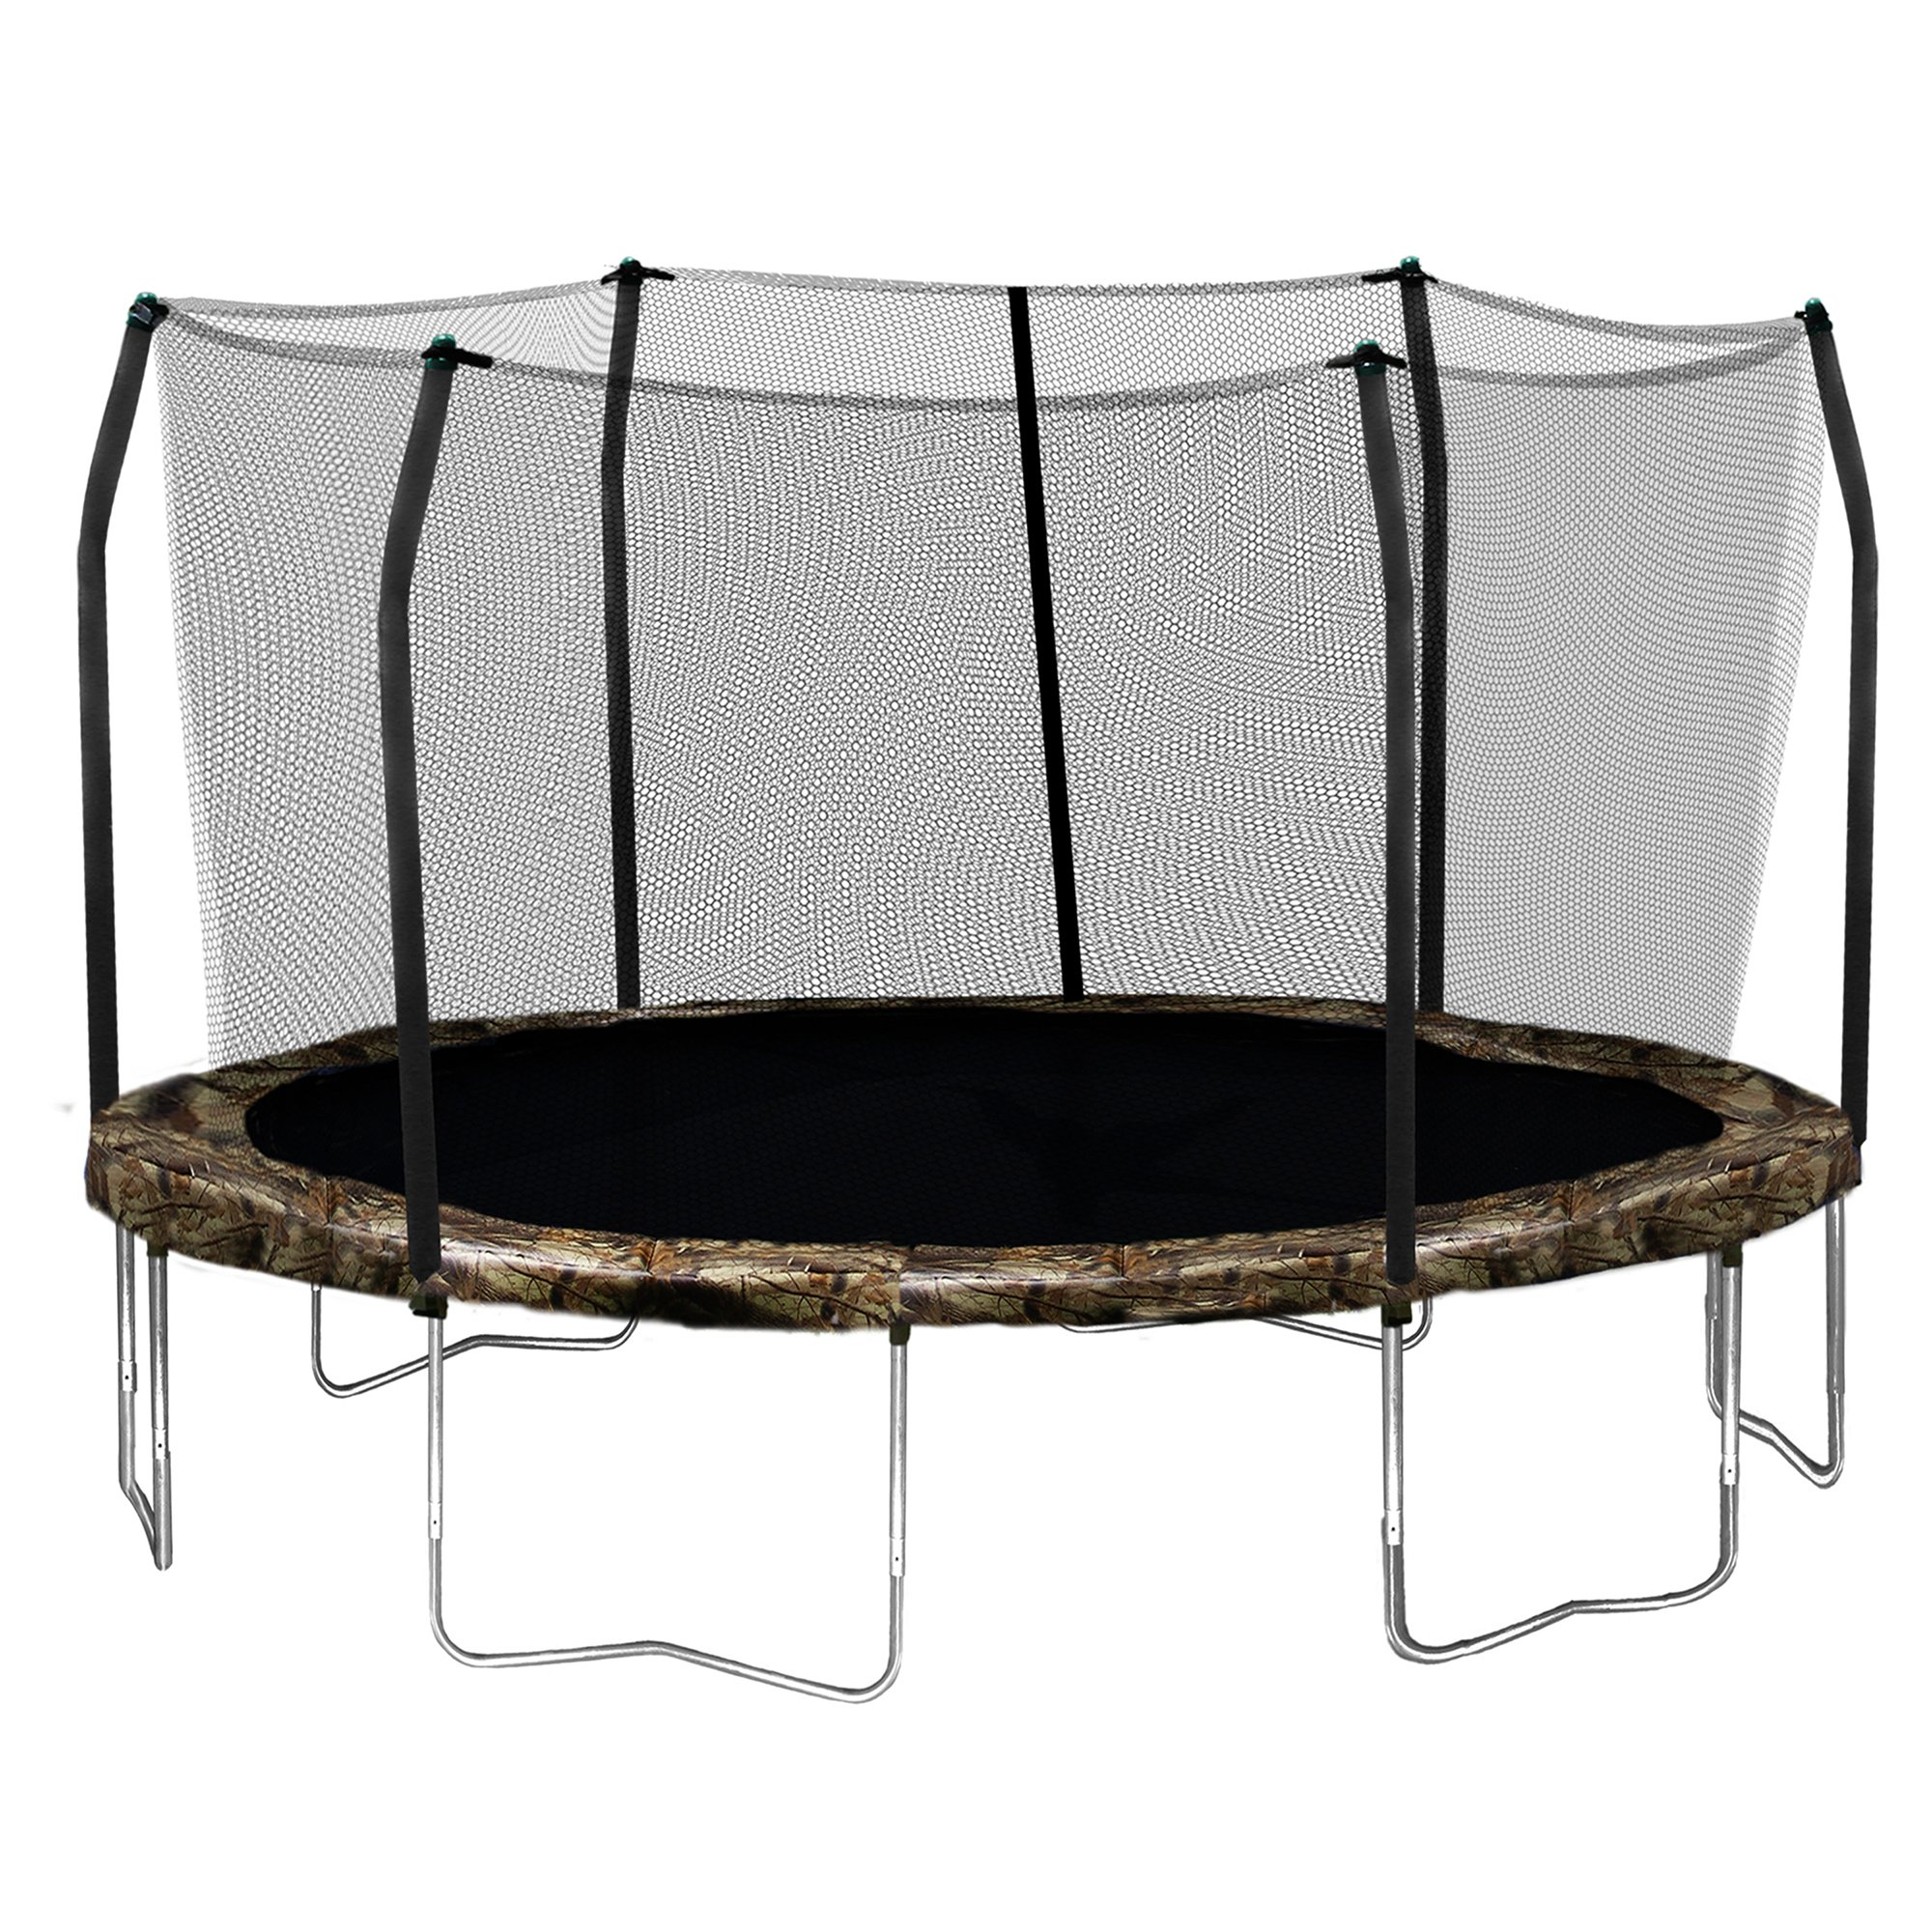 Skywalker Trampolines Round Trampoline and Enclosure with Camo Spring Pad, 15 Feet by Skywalker Trampolines